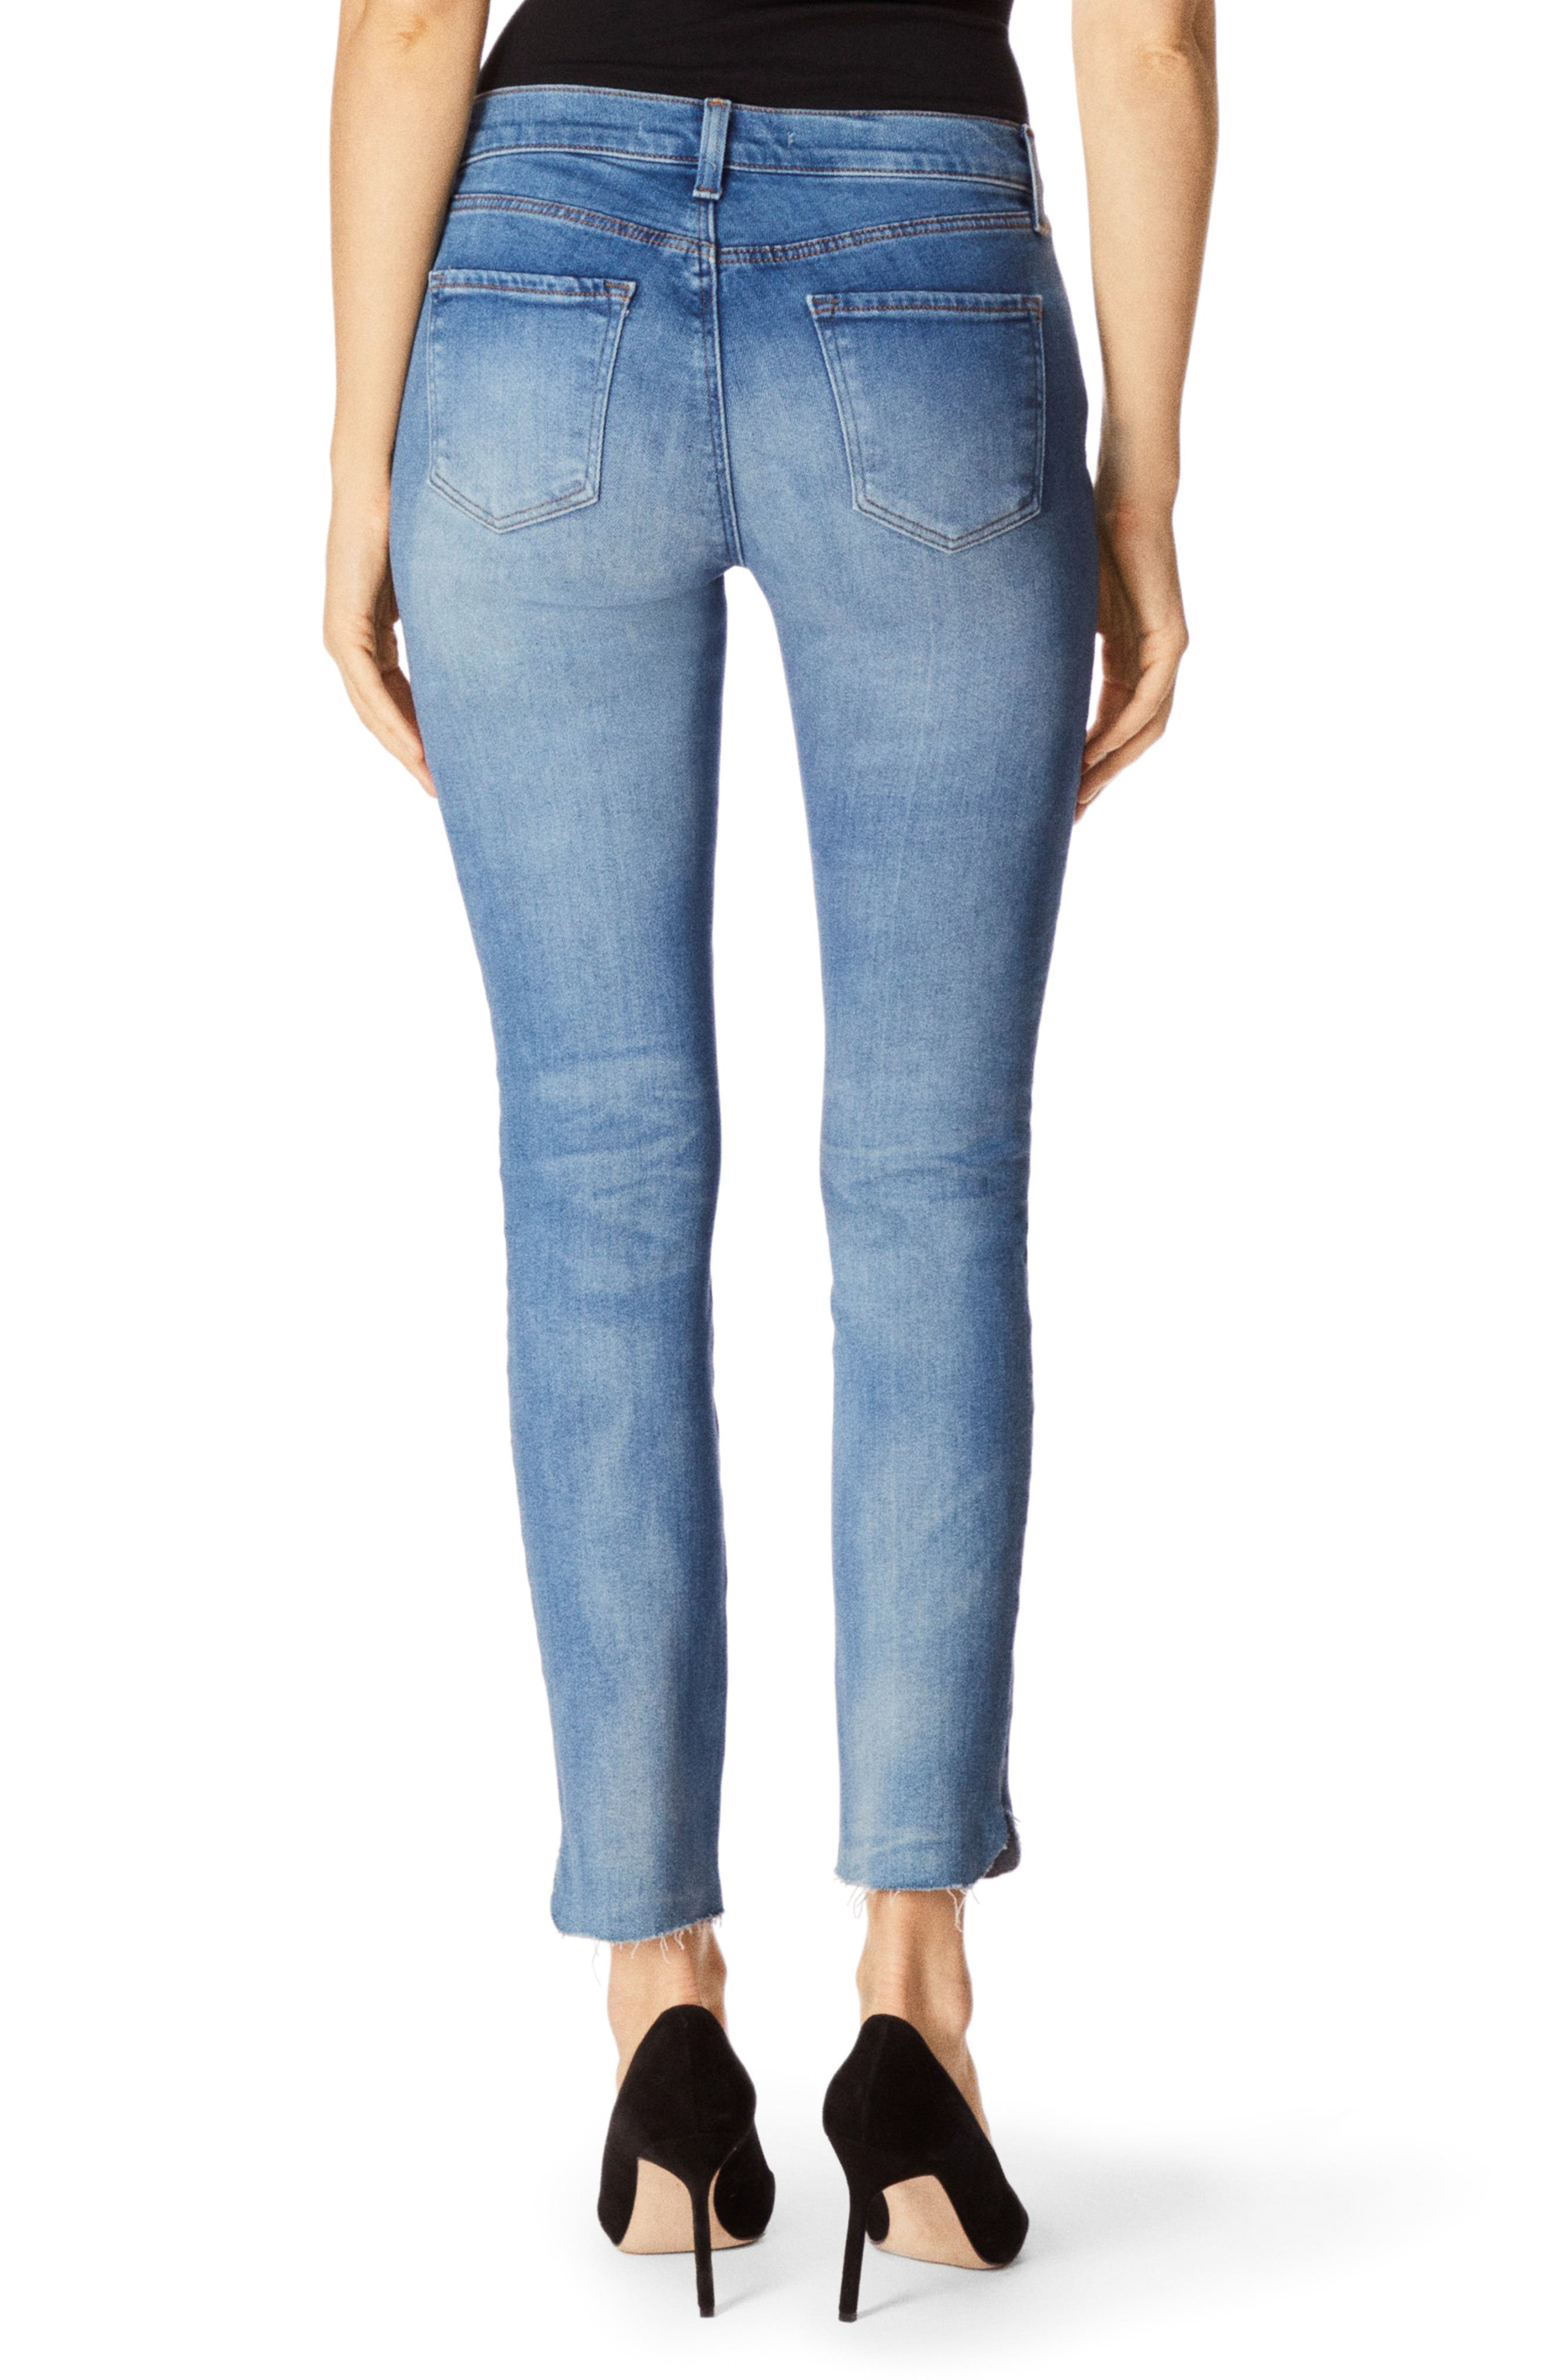 J BRAND, 811 Raw Hem Ankle Skinny Jeans, Alternate thumbnail 2, color, 400